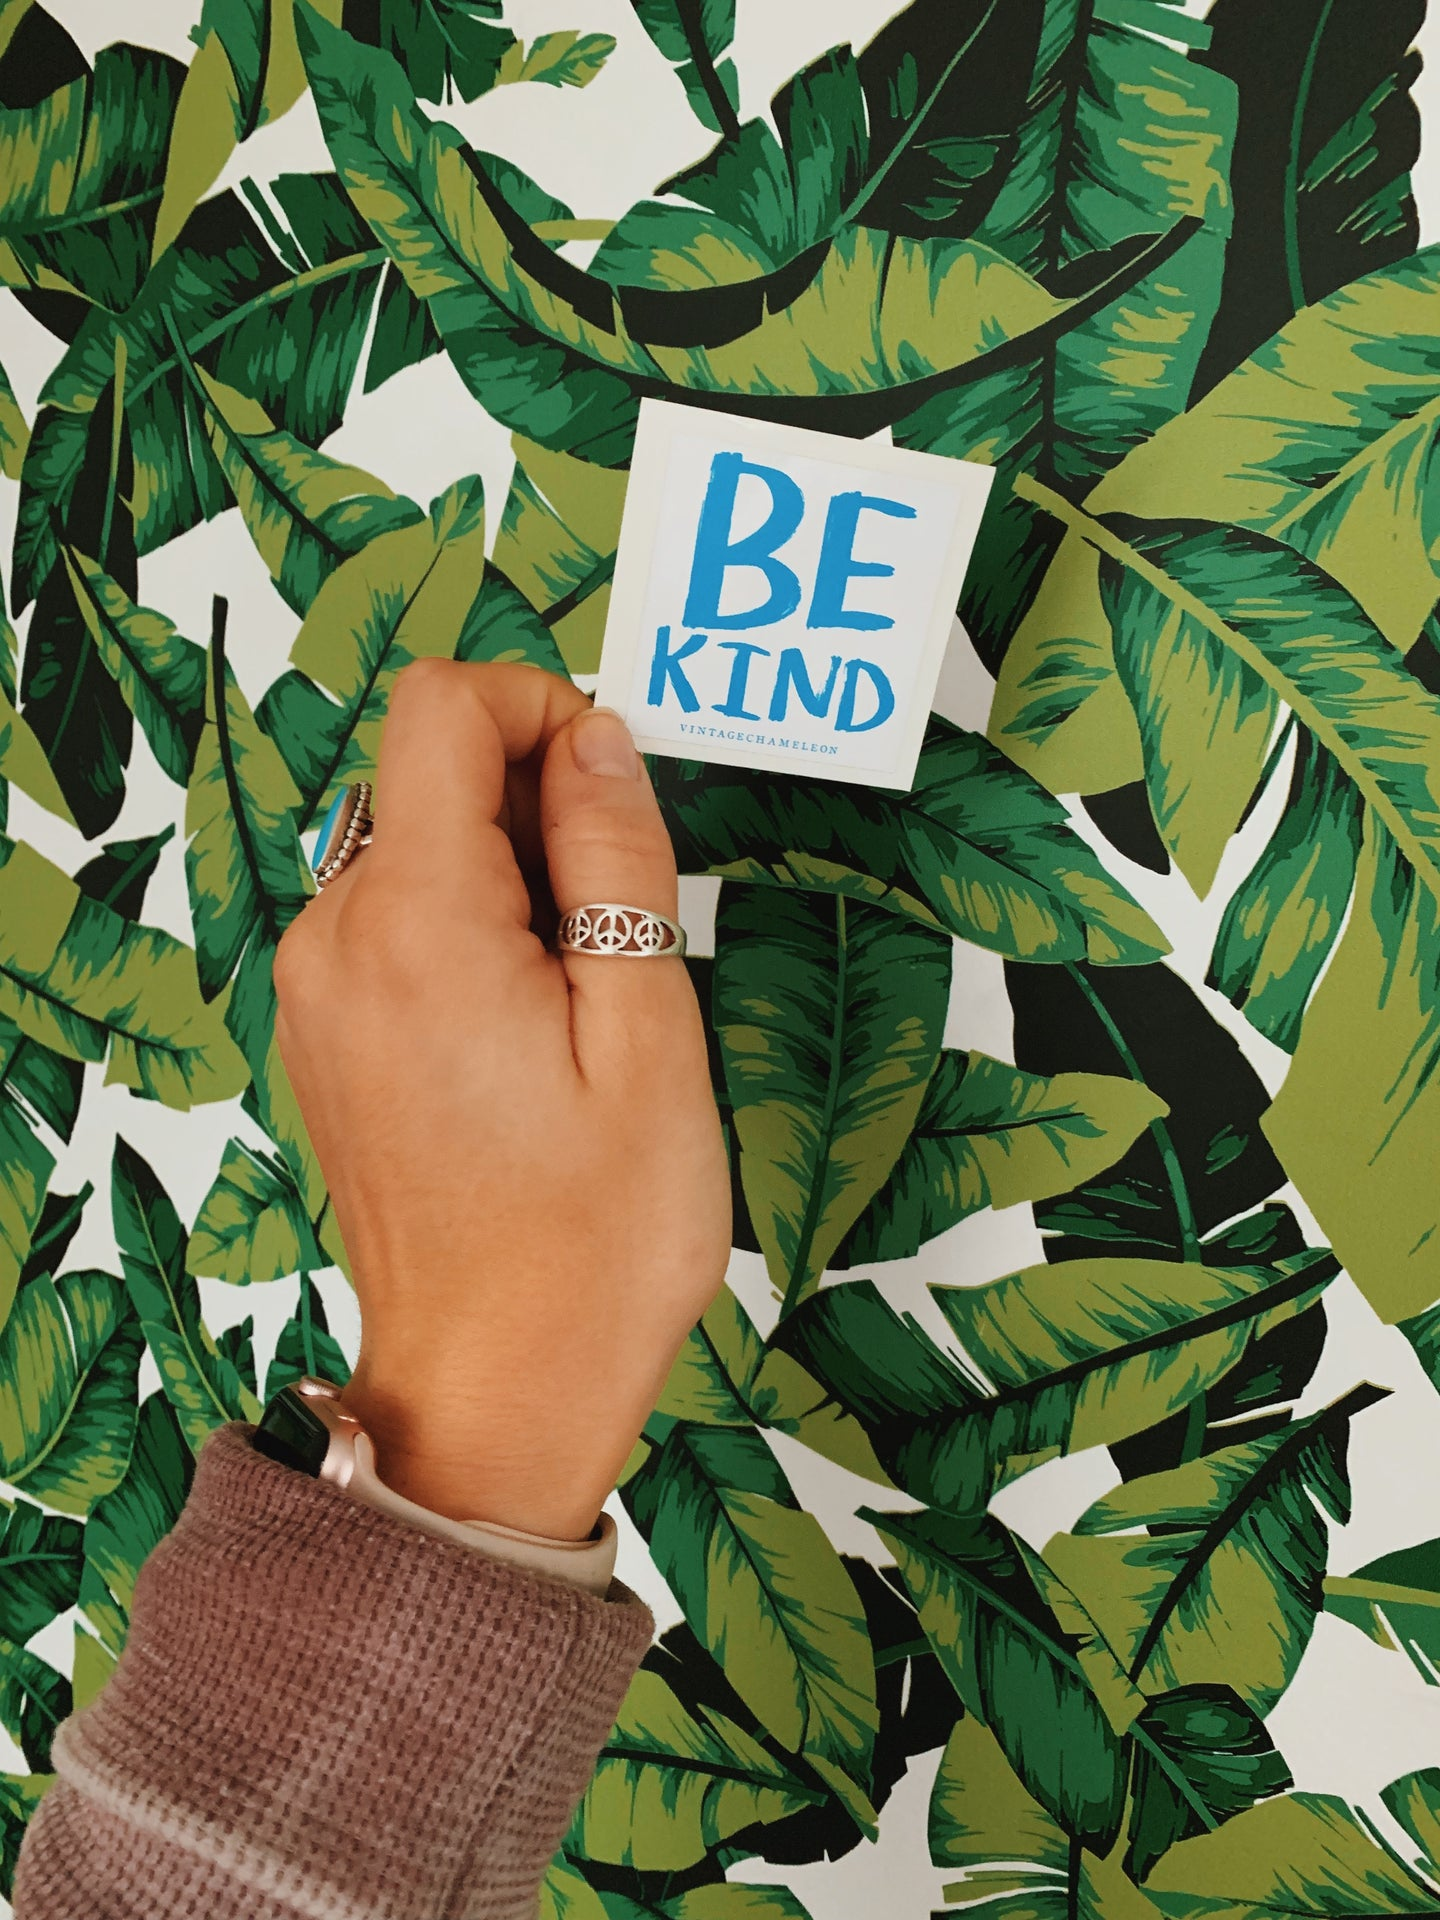 Be Kind Waterproof Sticker - VintageChameleon